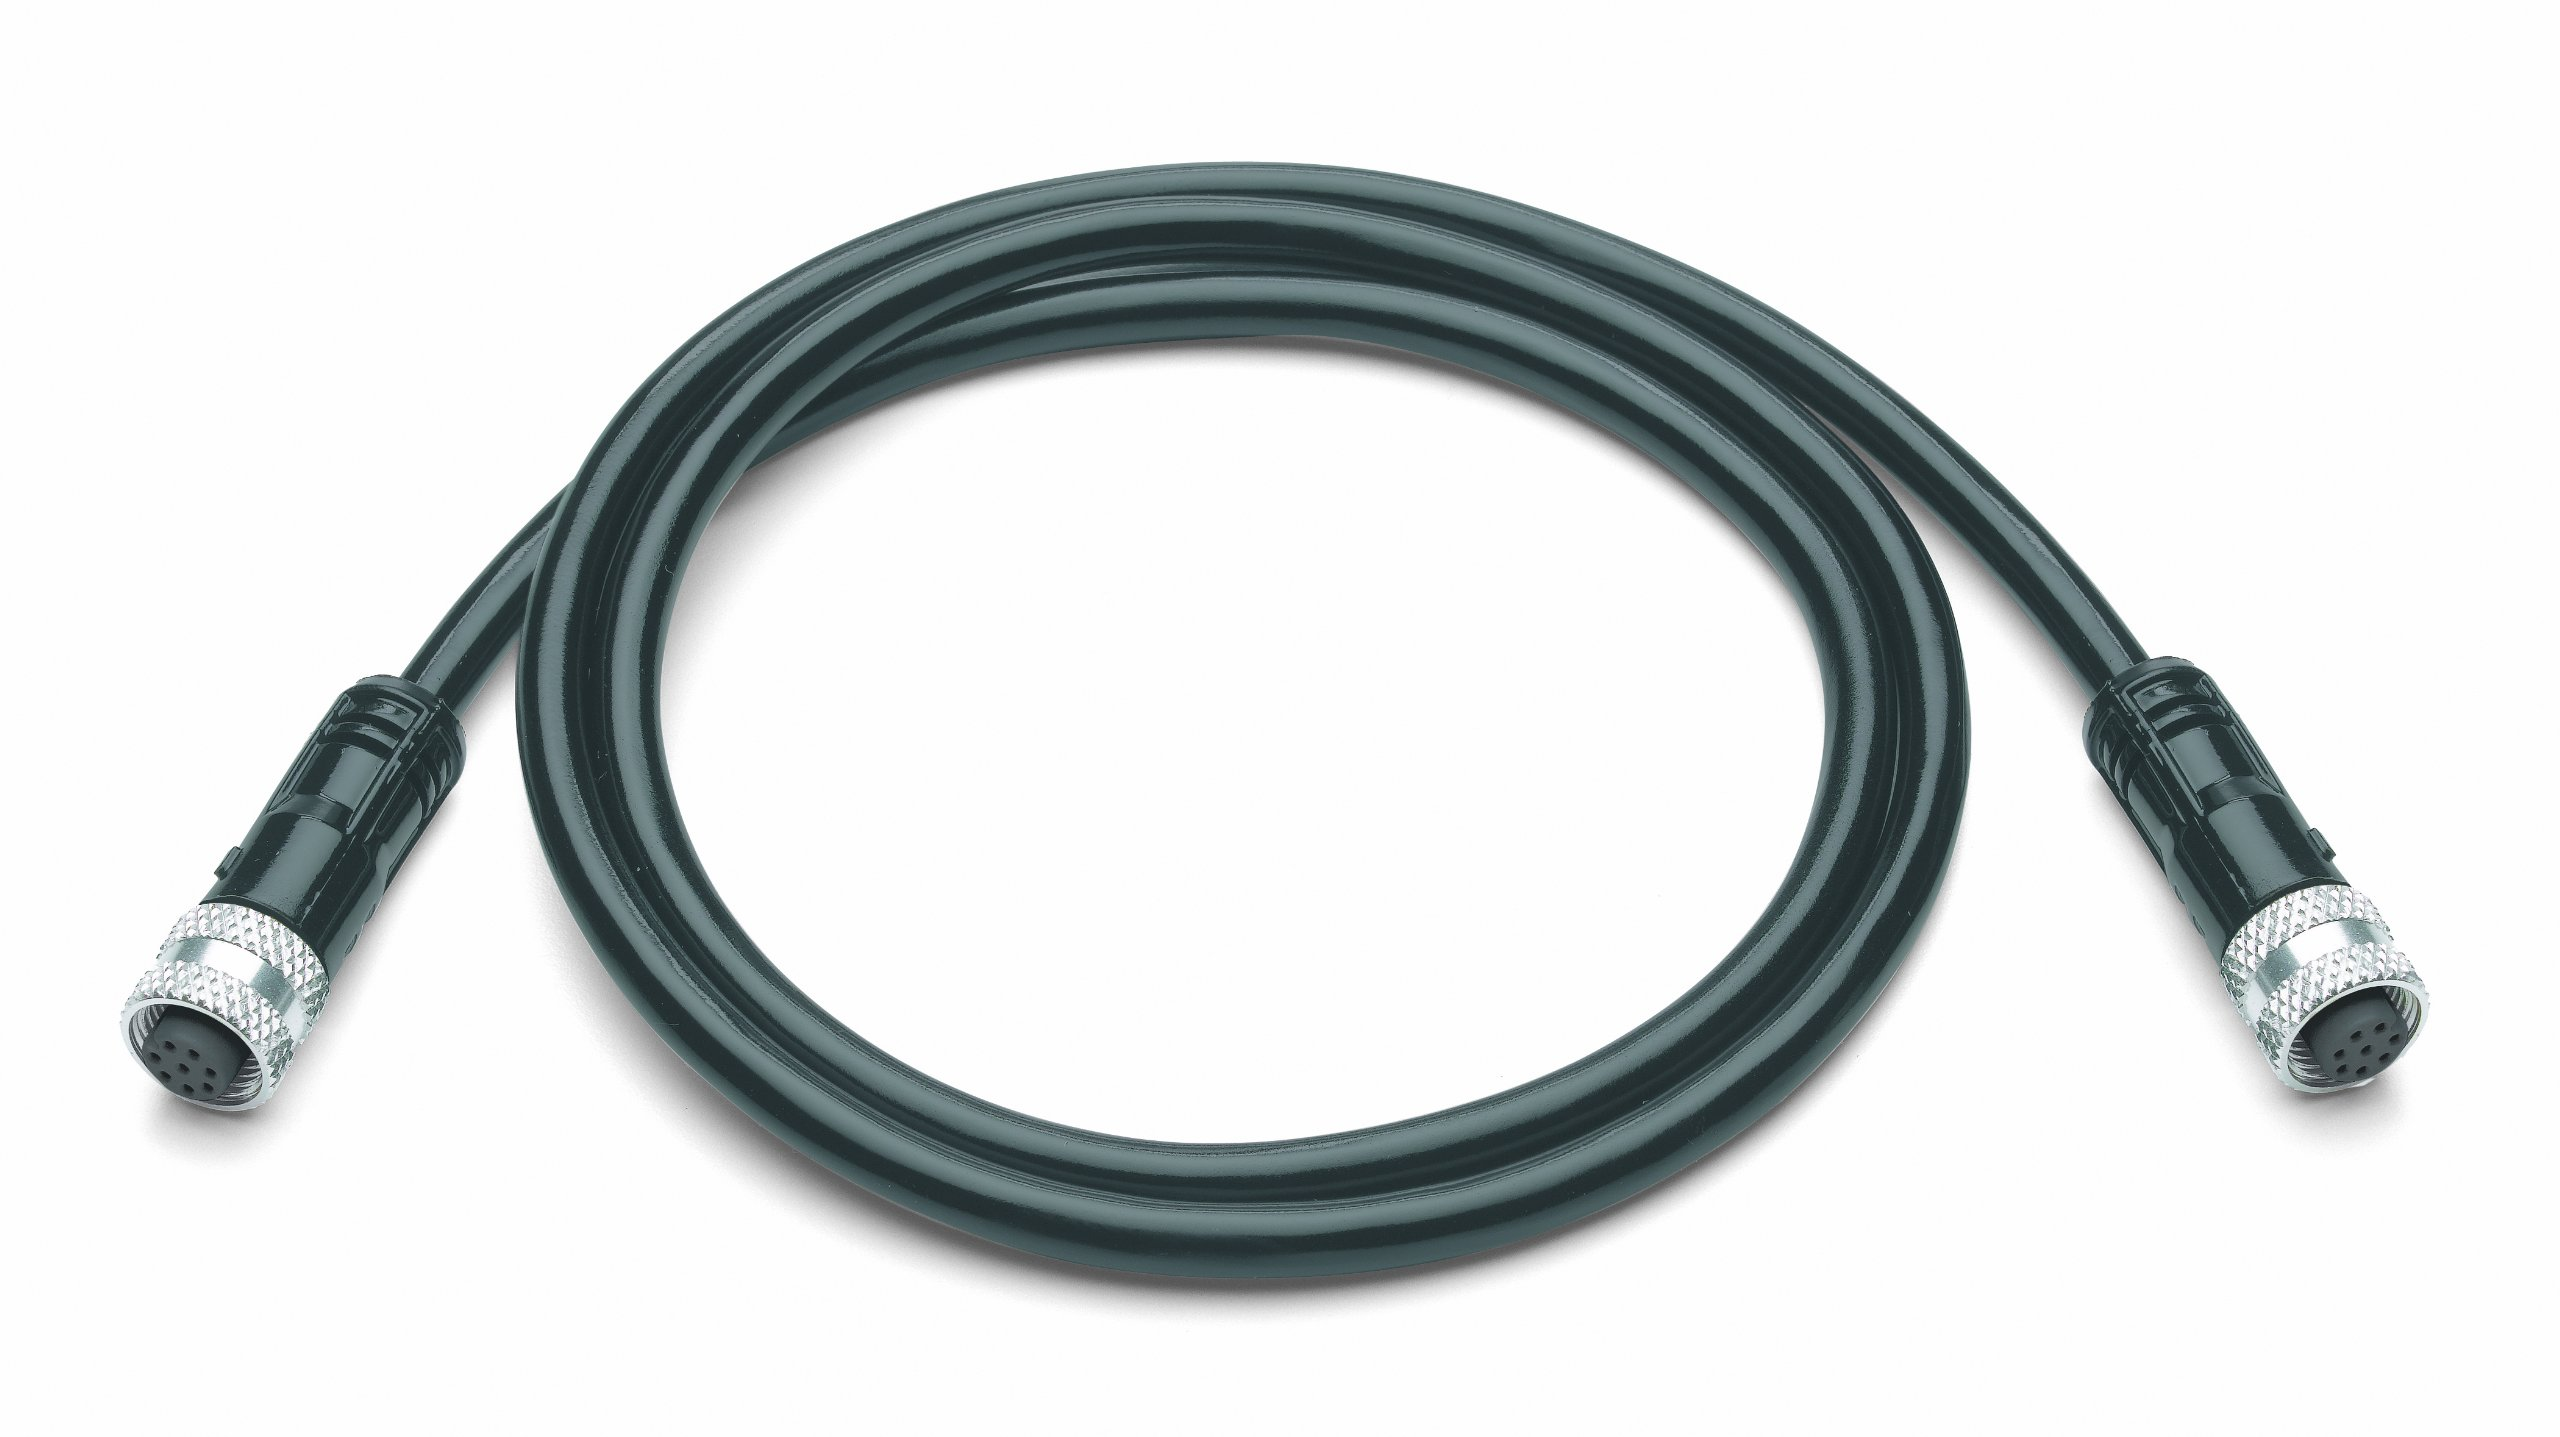 Humminbird 720073-5 15 Foot Ethernet Cable by Humminbird